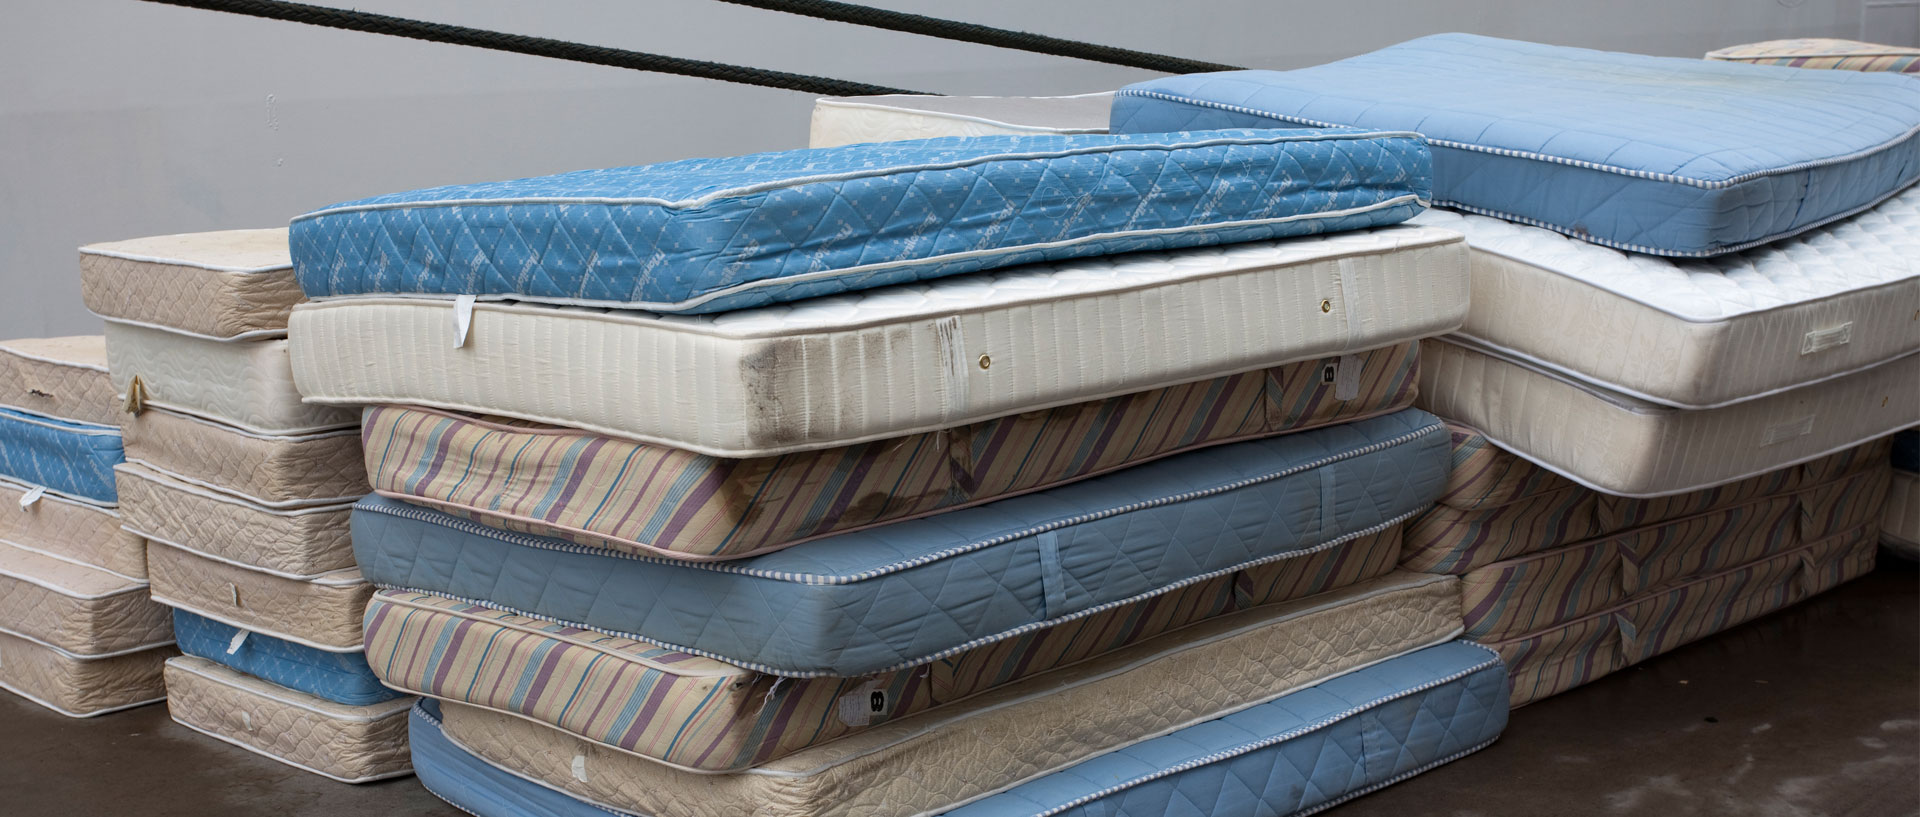 mattress recycling is easier than you think consumer reports